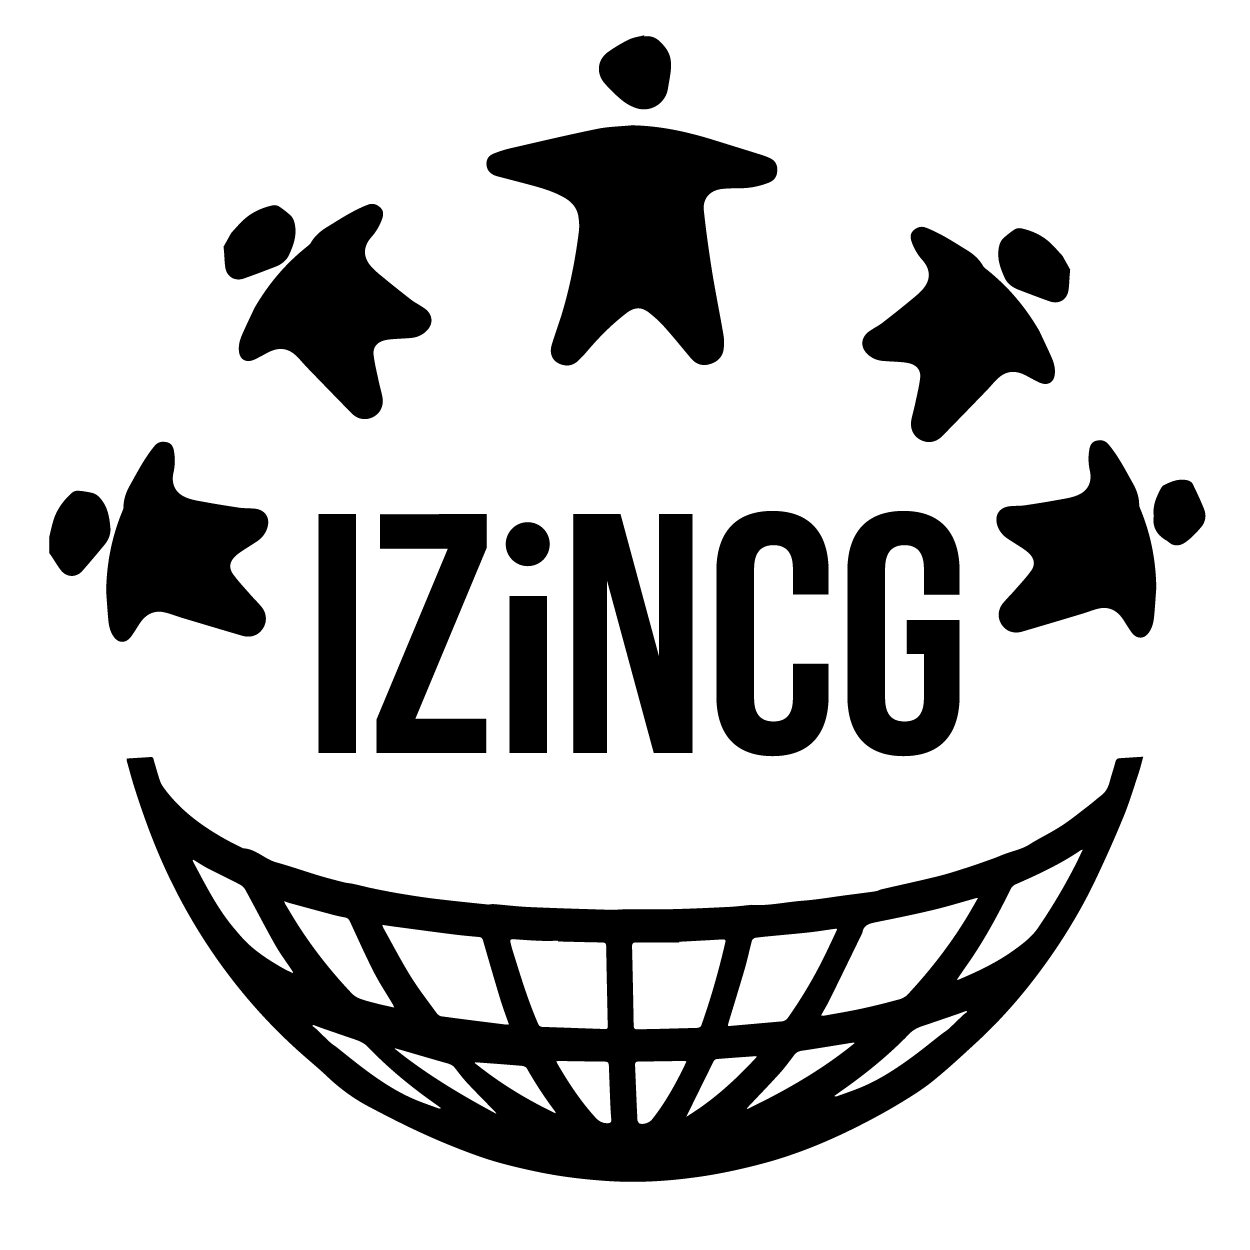 Logo of International Zinc Nutrition Consultative Group (IZiNCG)